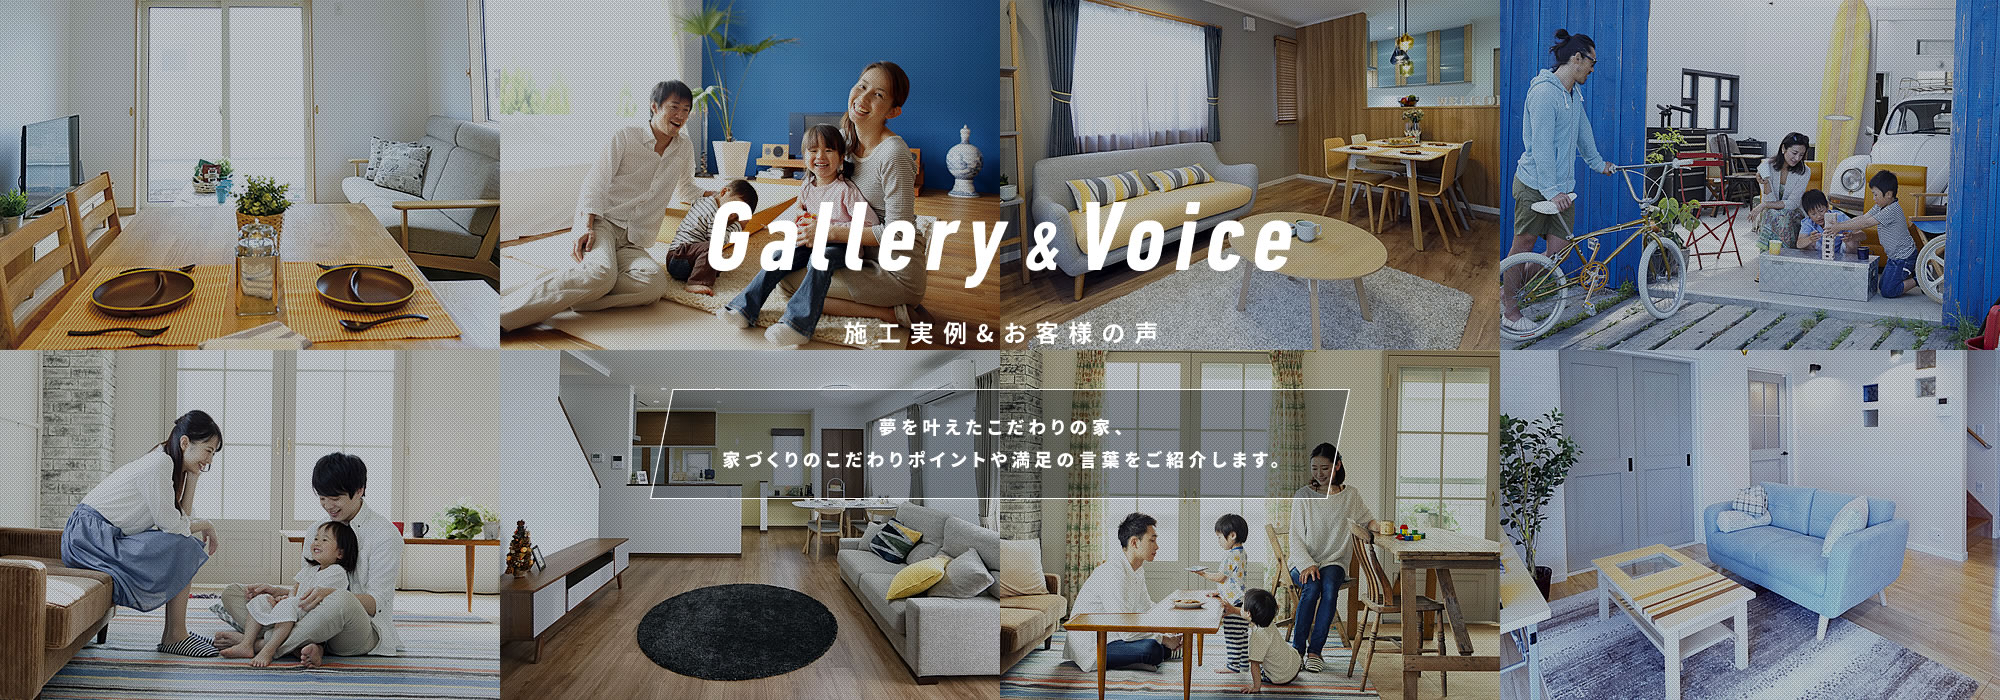 GALLERY&VOICE